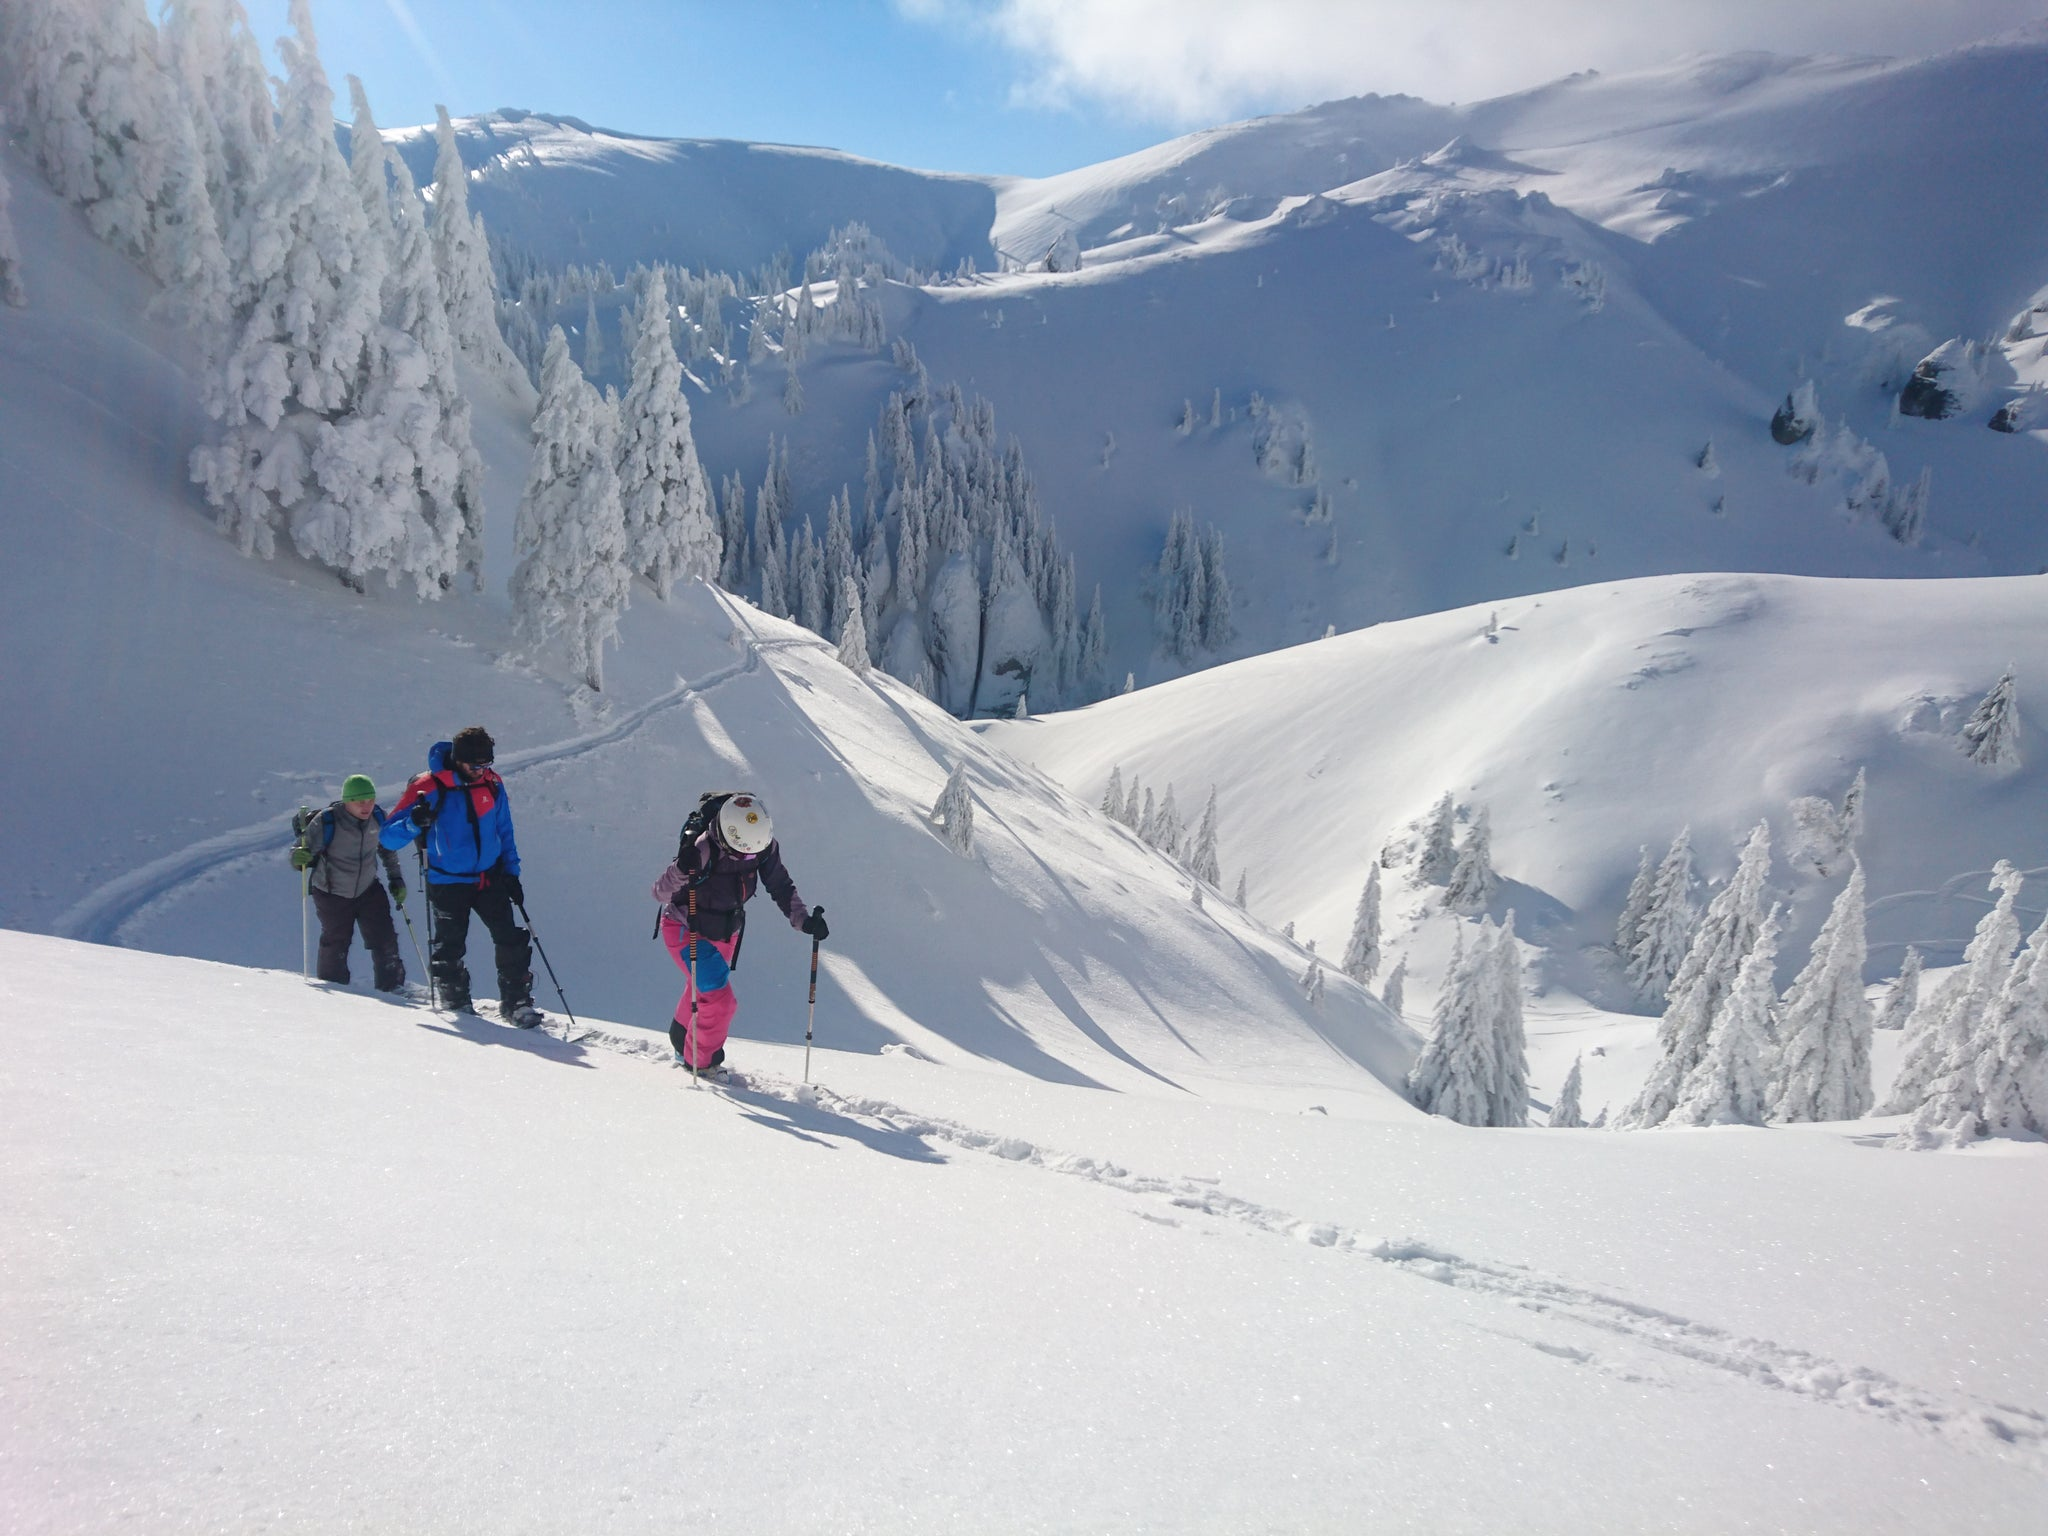 splitboard, ride, winter, romania, powder, ciucas, riding, guiding, lessons, offpiste, backcountry